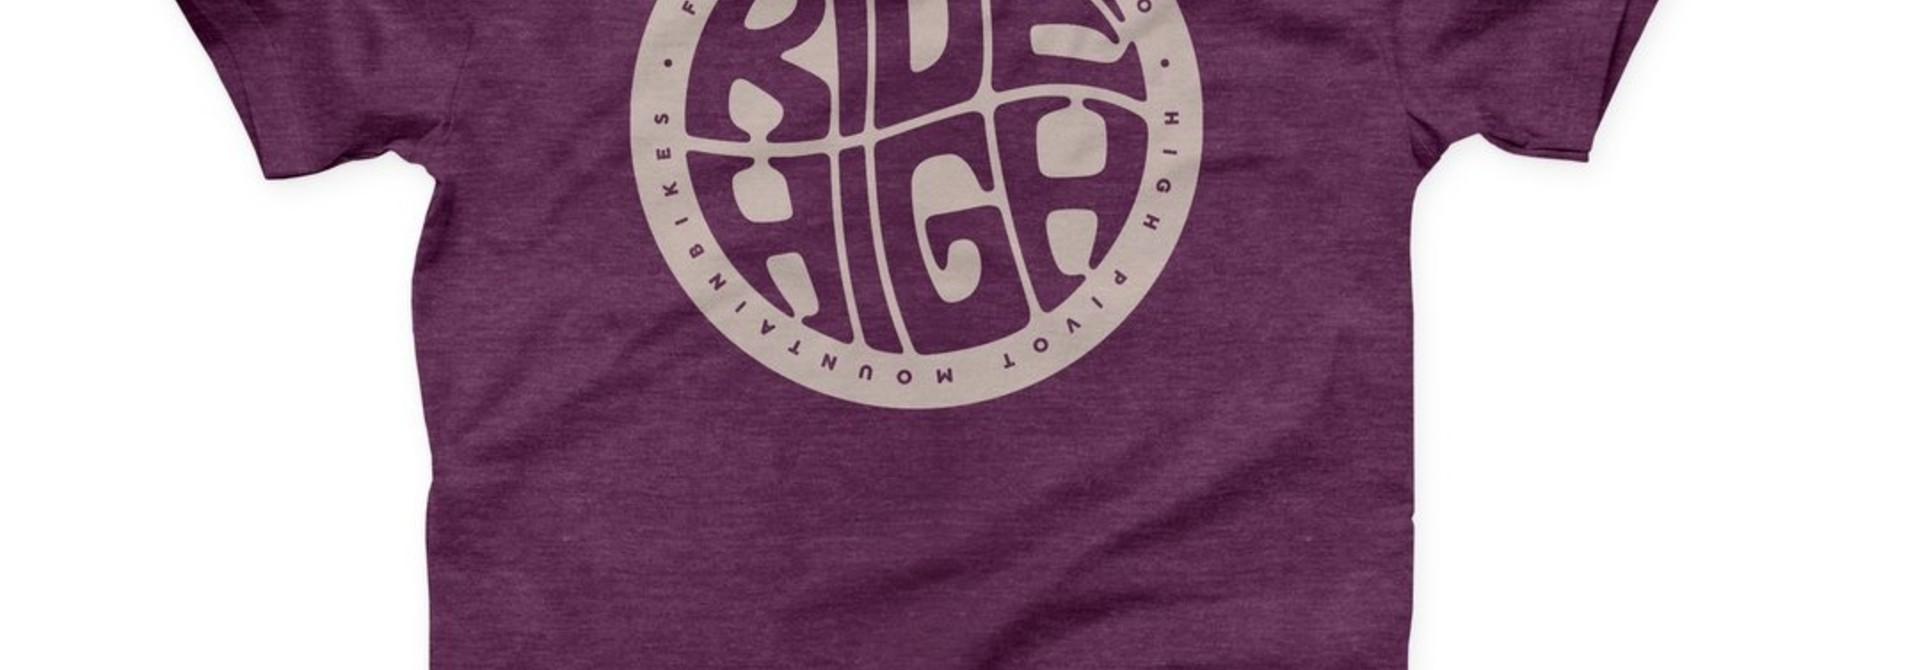 Forbidden Ride High Tee SS Medium - Plum